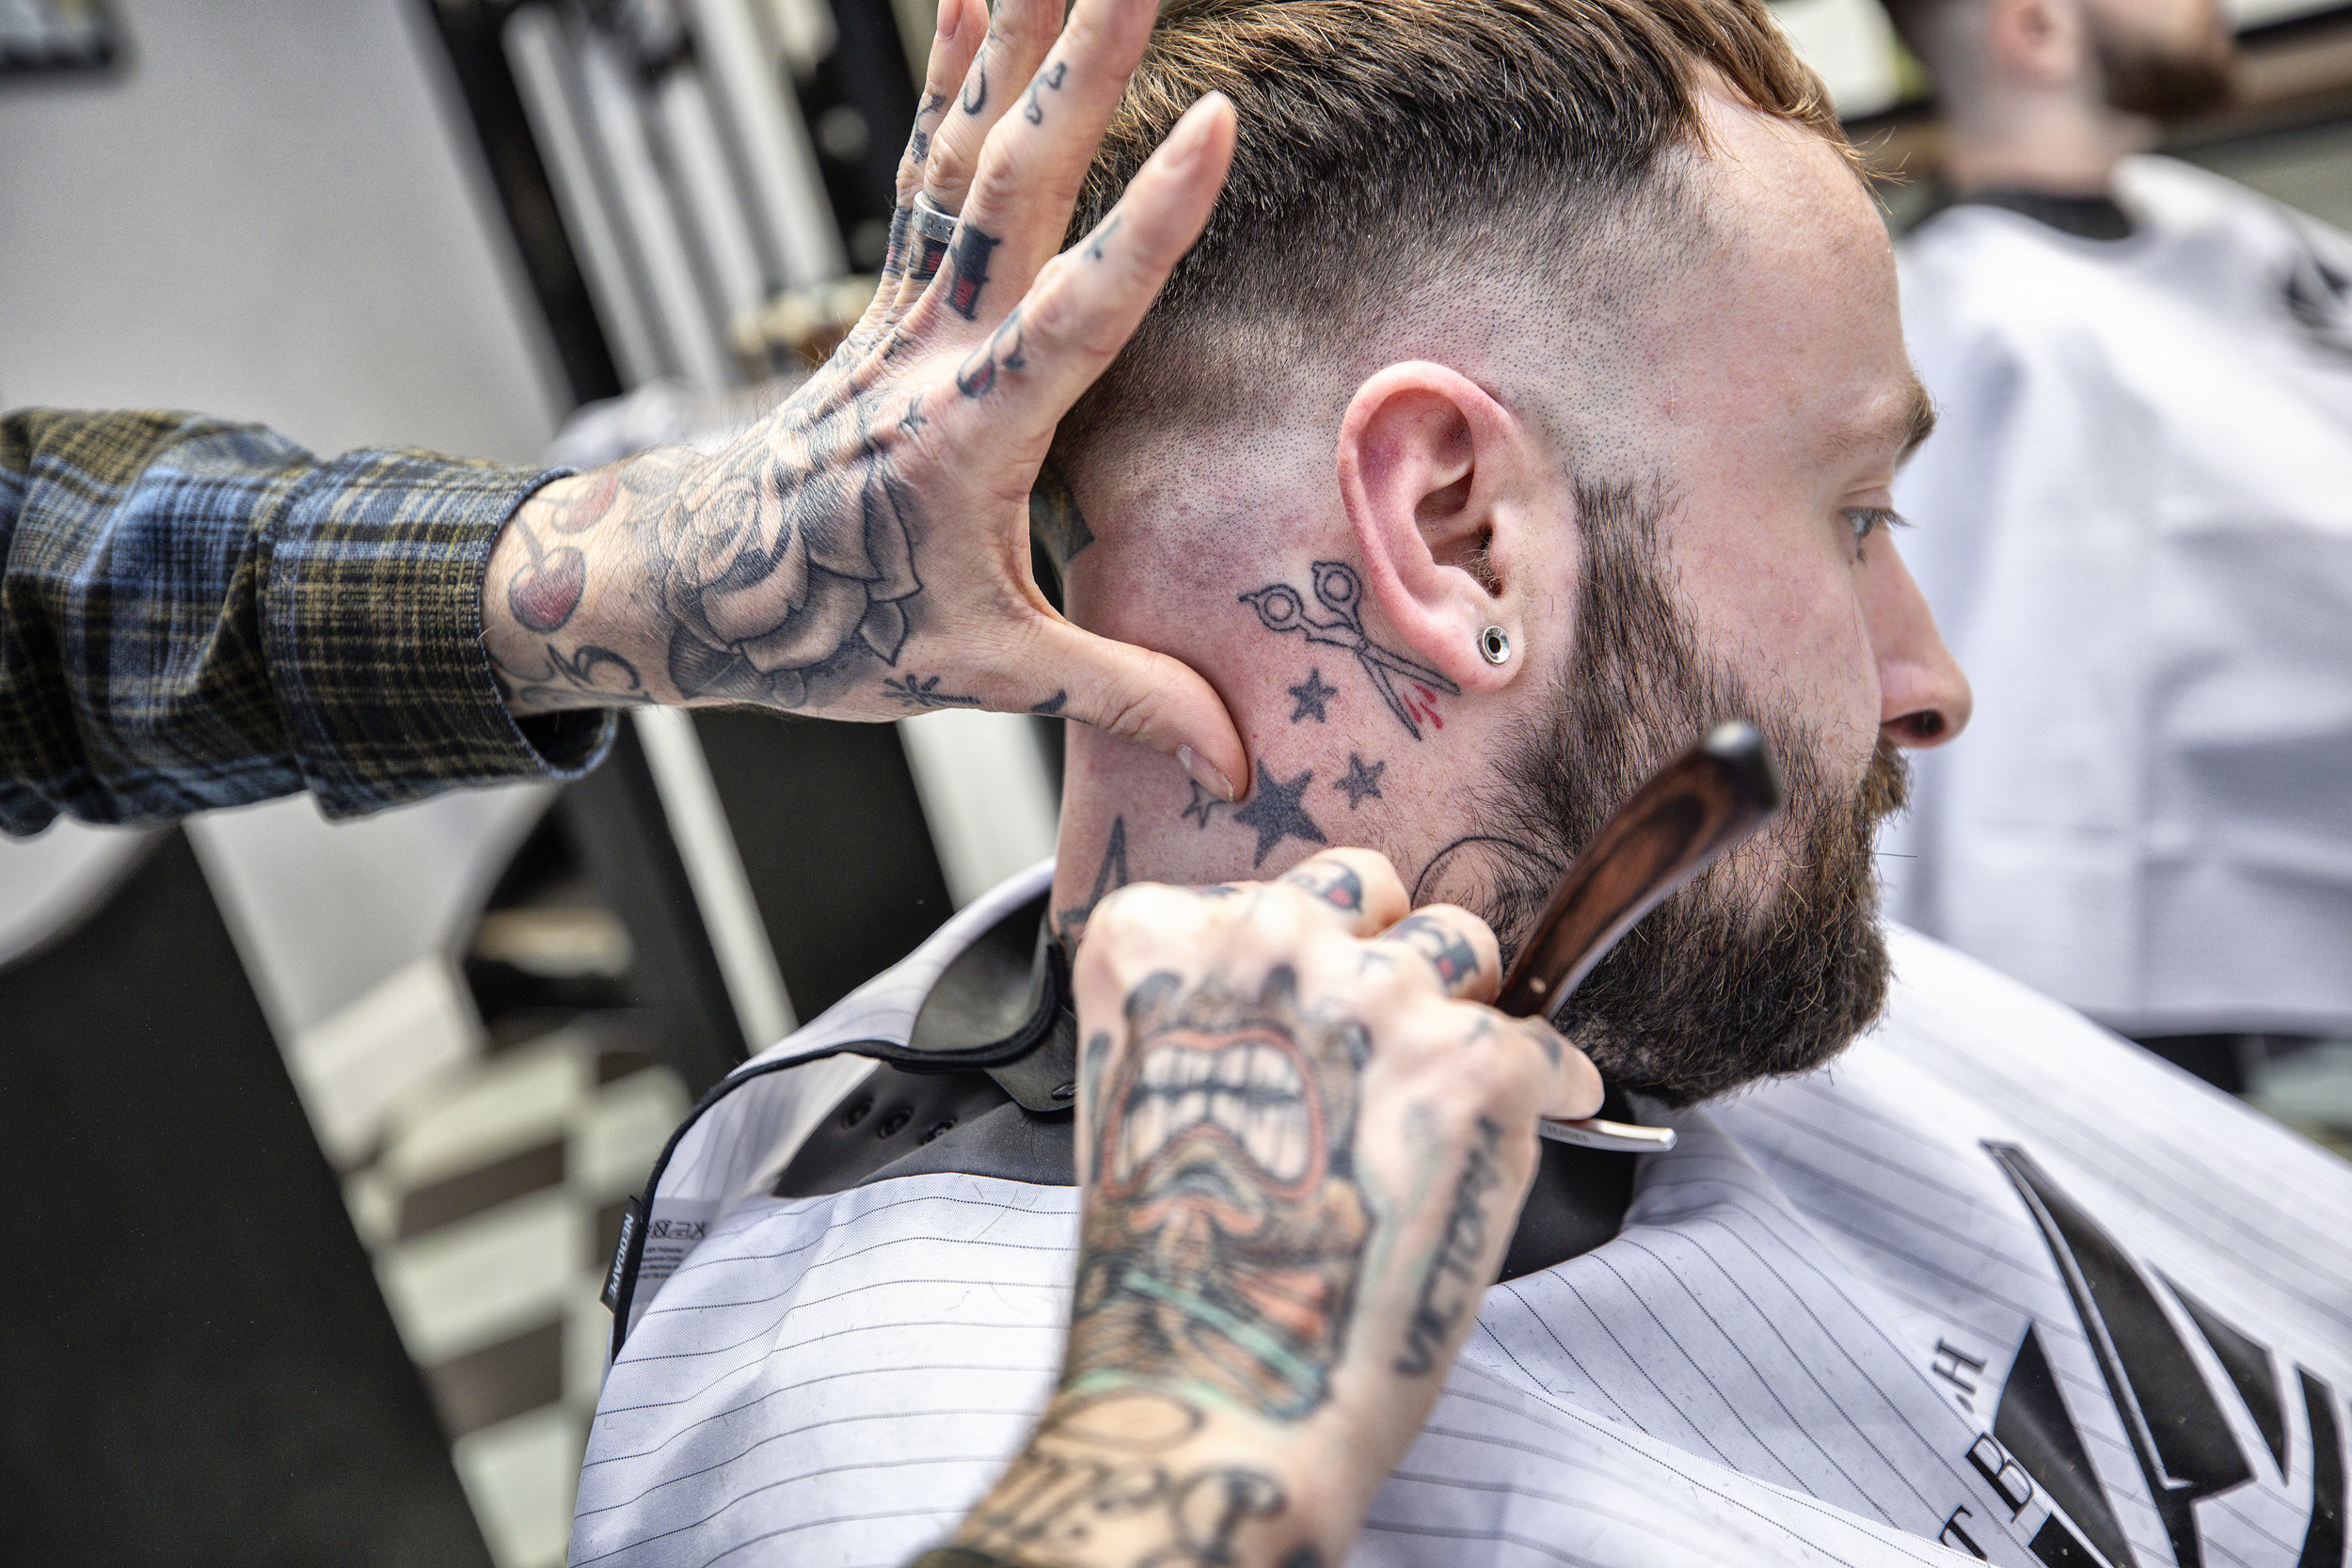 Fade Away - This course will teach you all the techniques required to create great looking fades